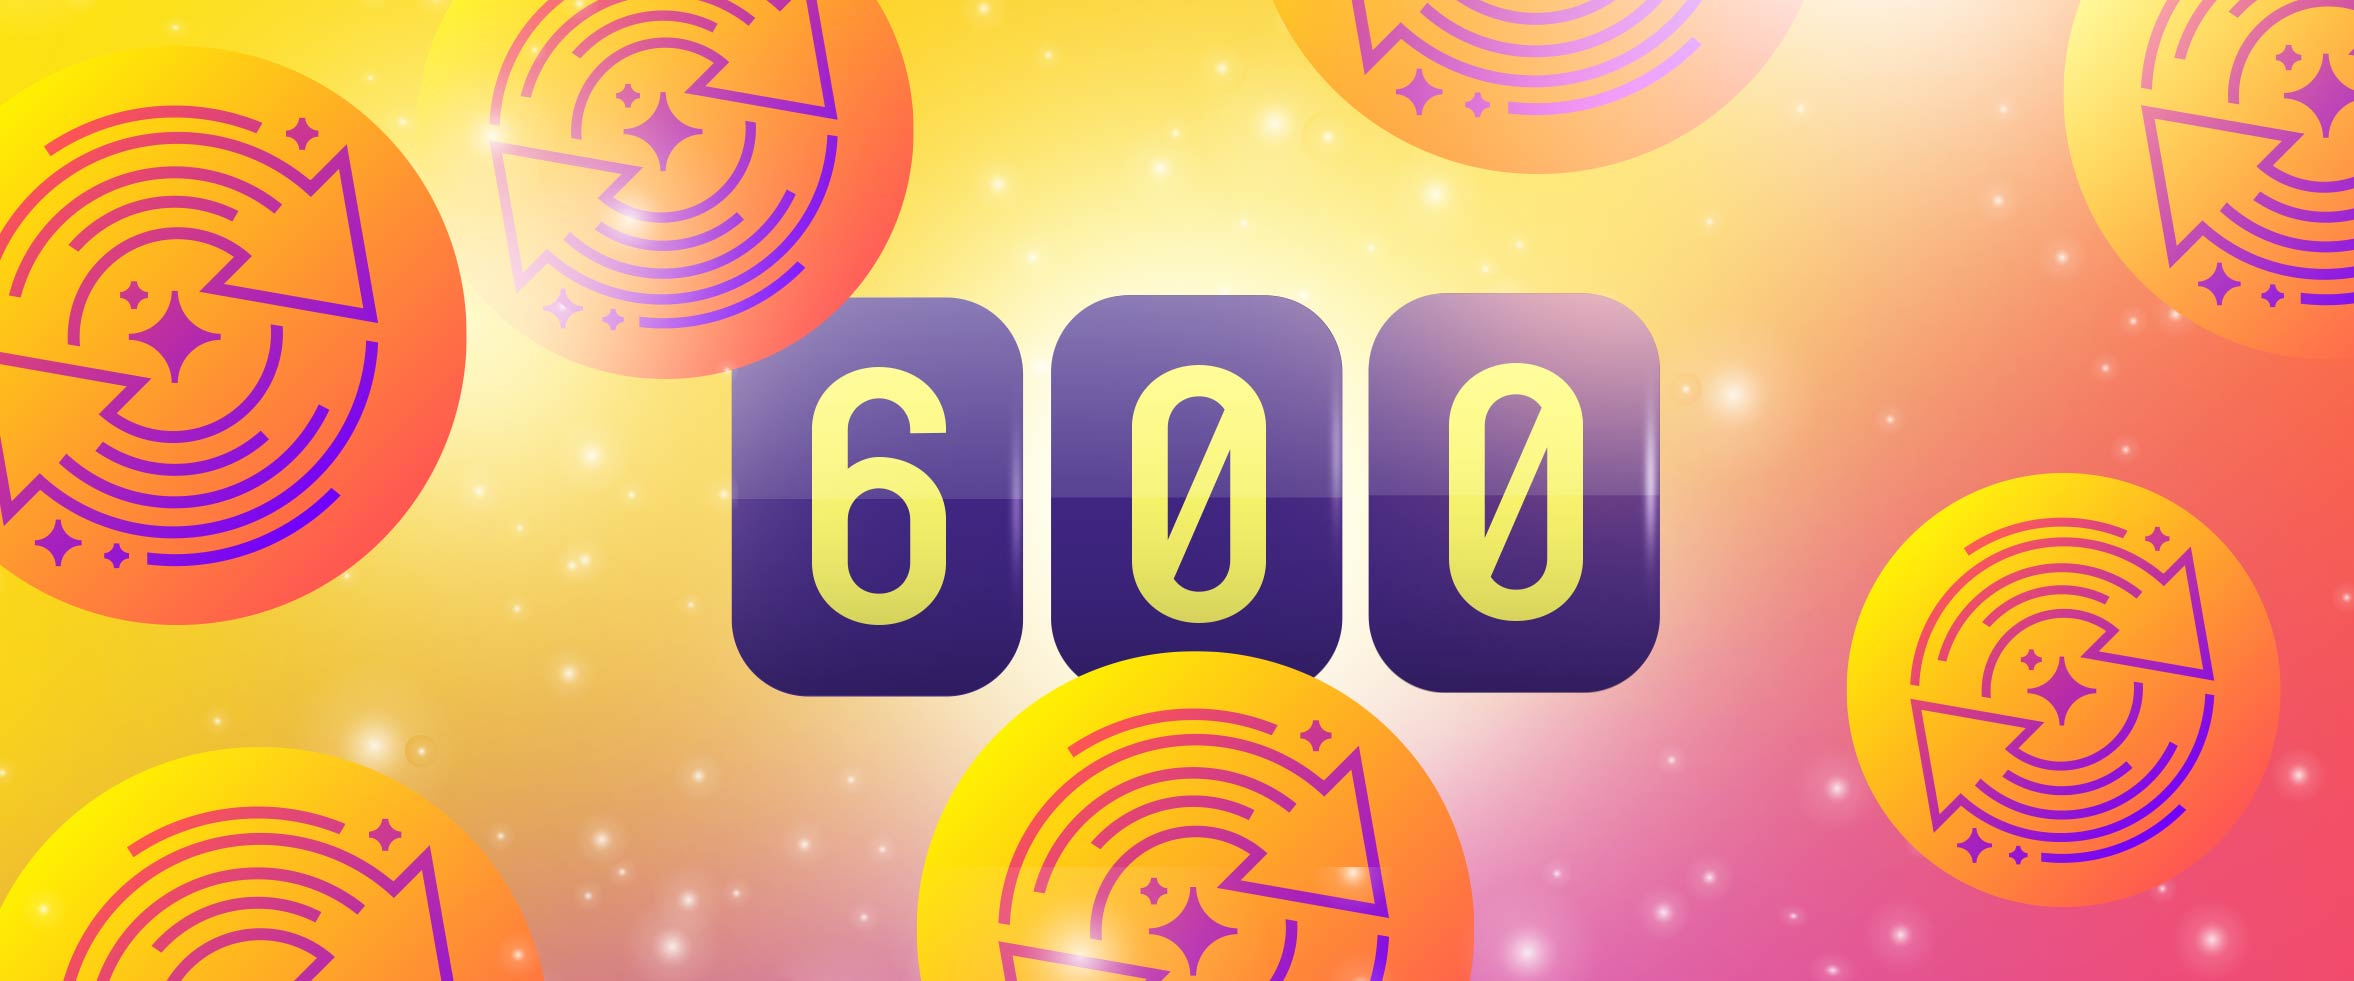 600 Free Spins this September